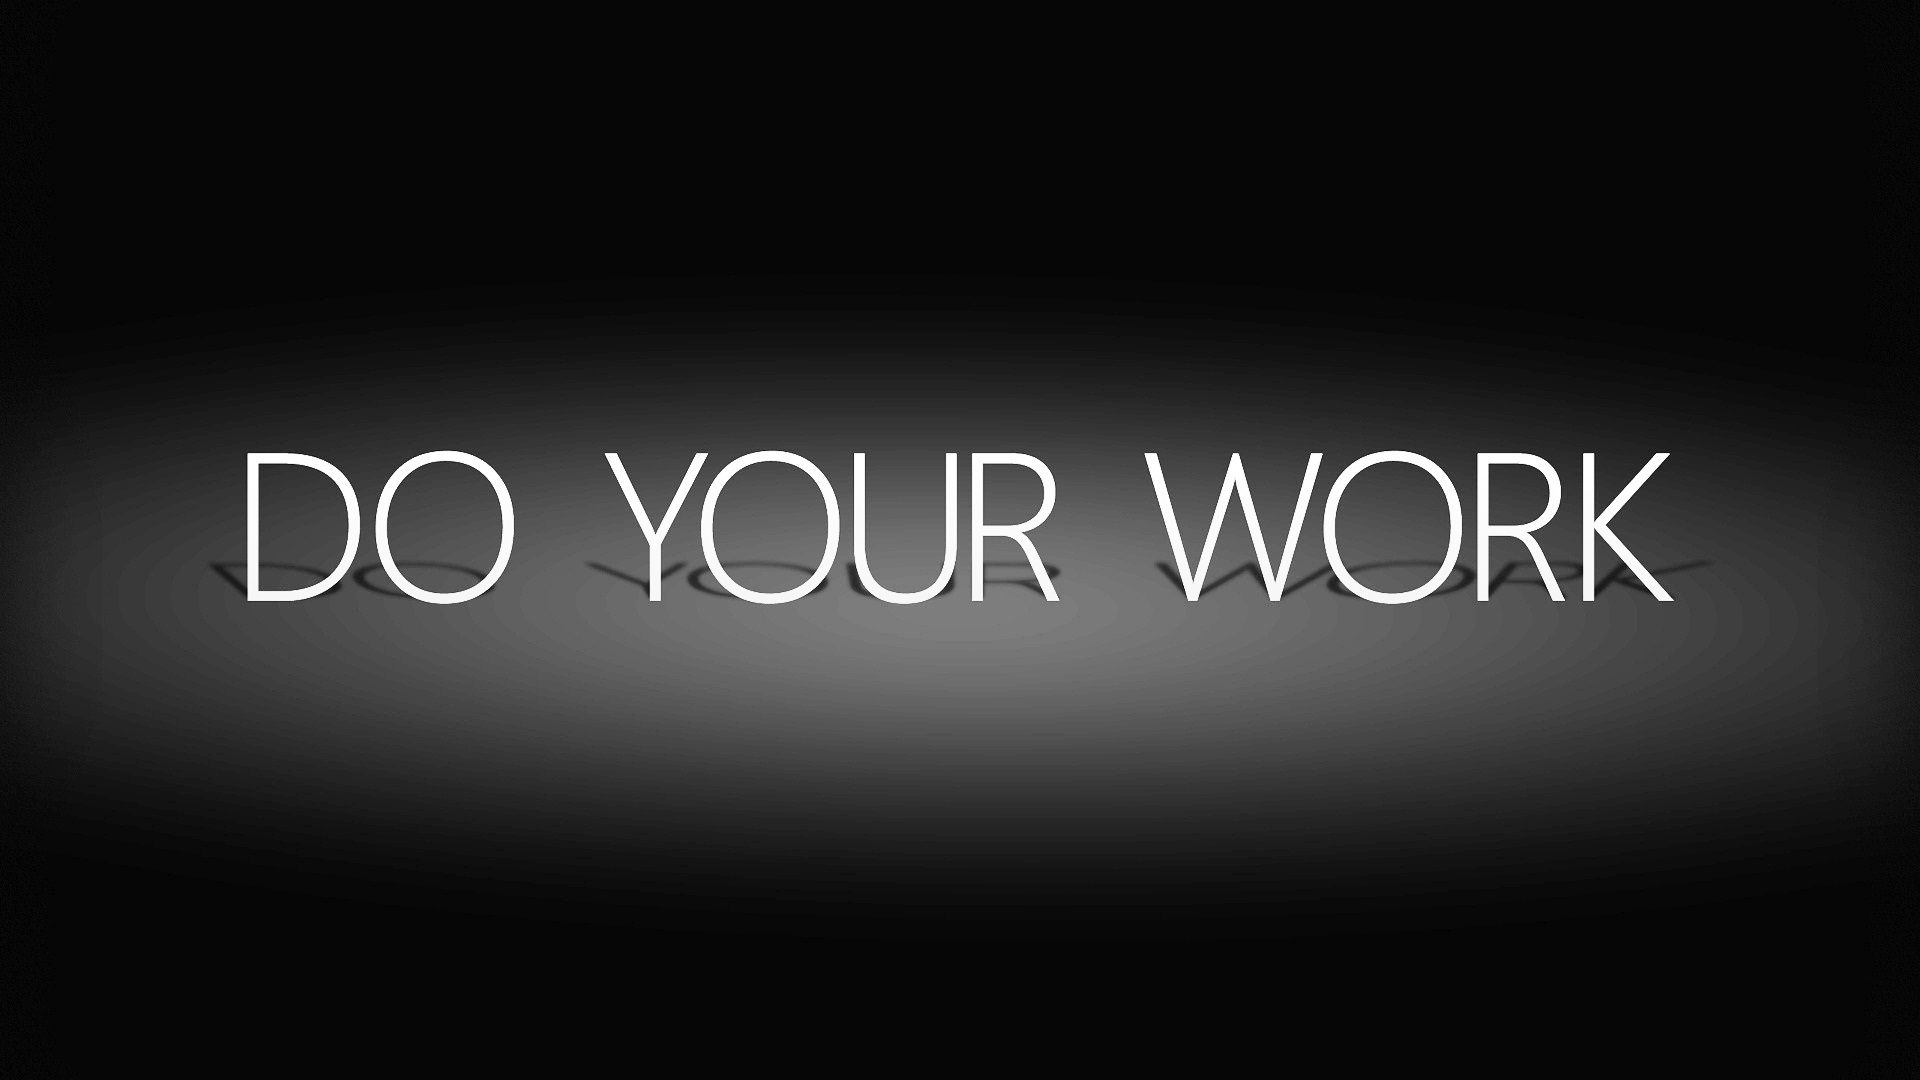 Do Your Work Wallpapers   Top Do Your Work Backgrounds 1920x1080